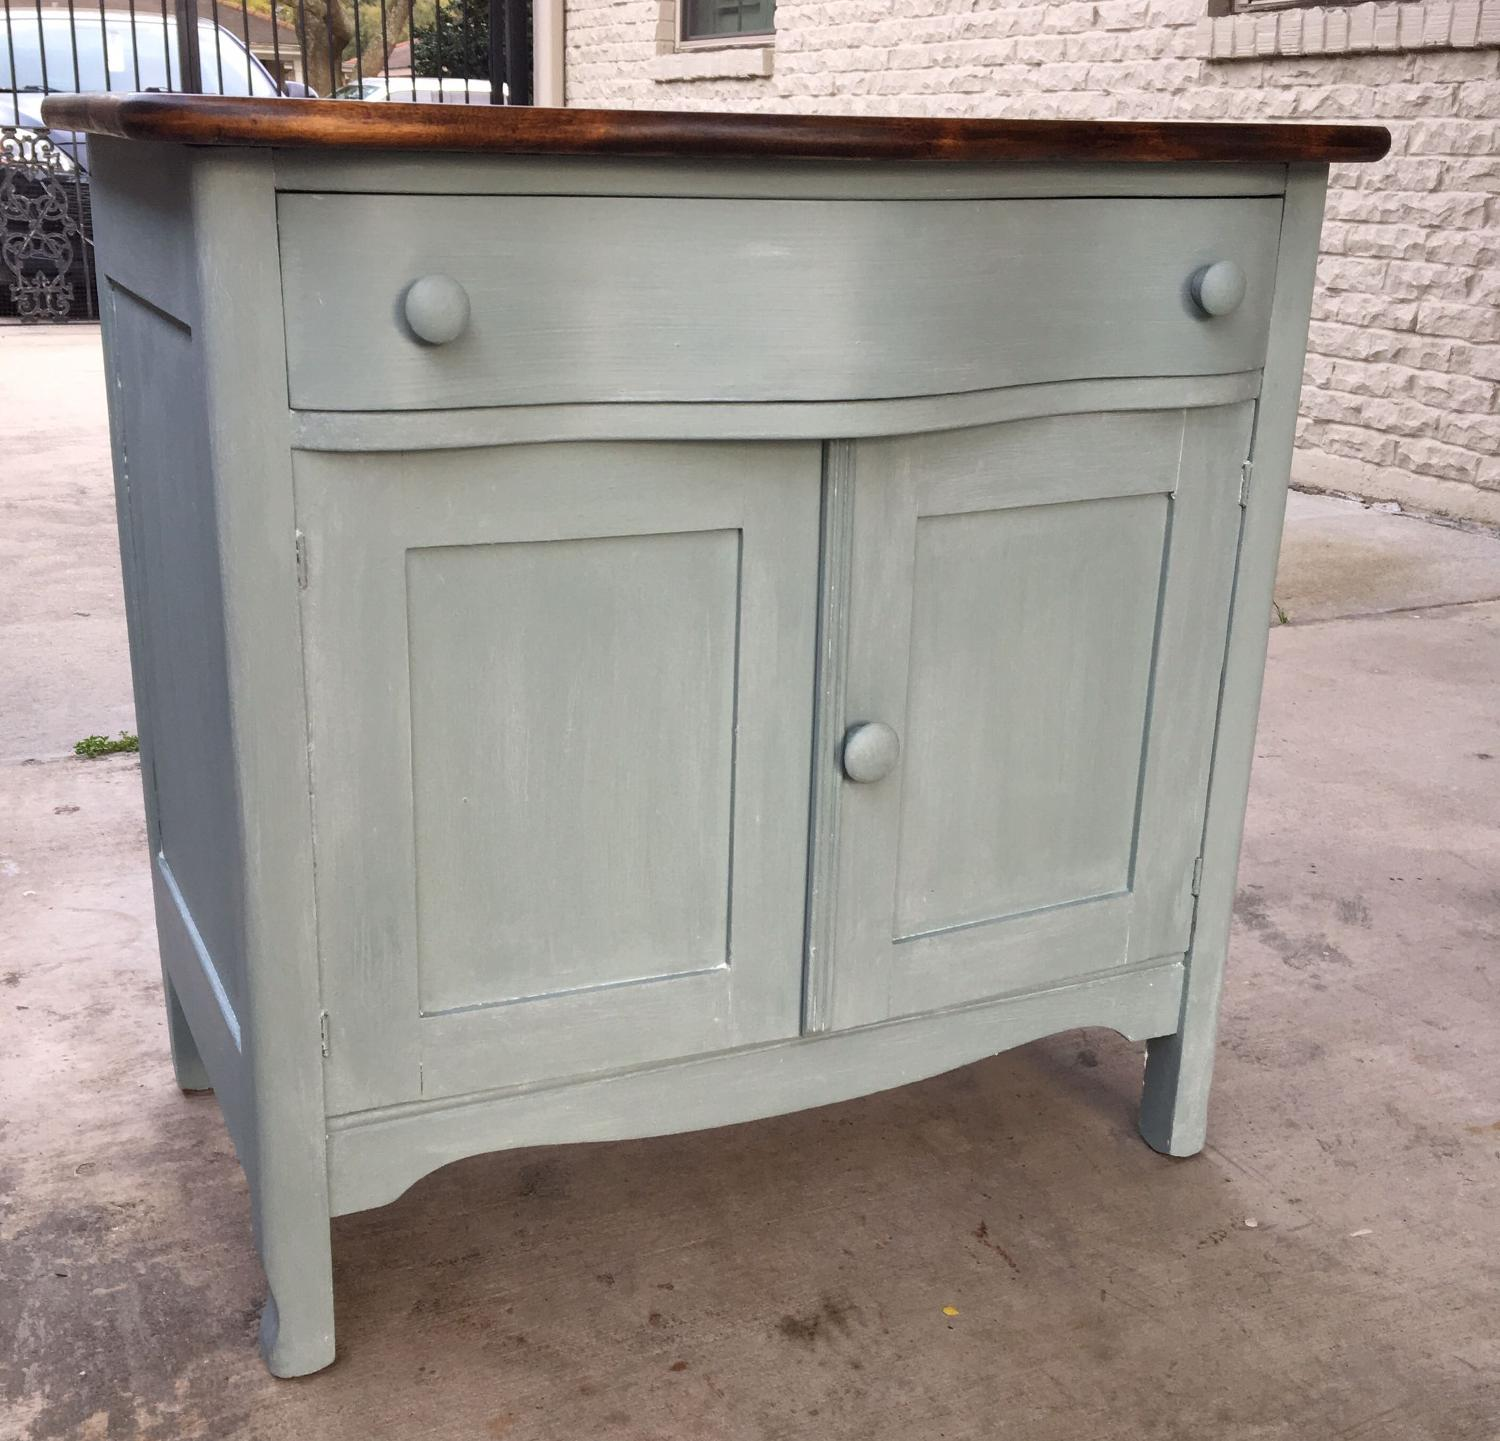 Find More Antique Wash Stand For Sale At Up To 90 Off Metairie La